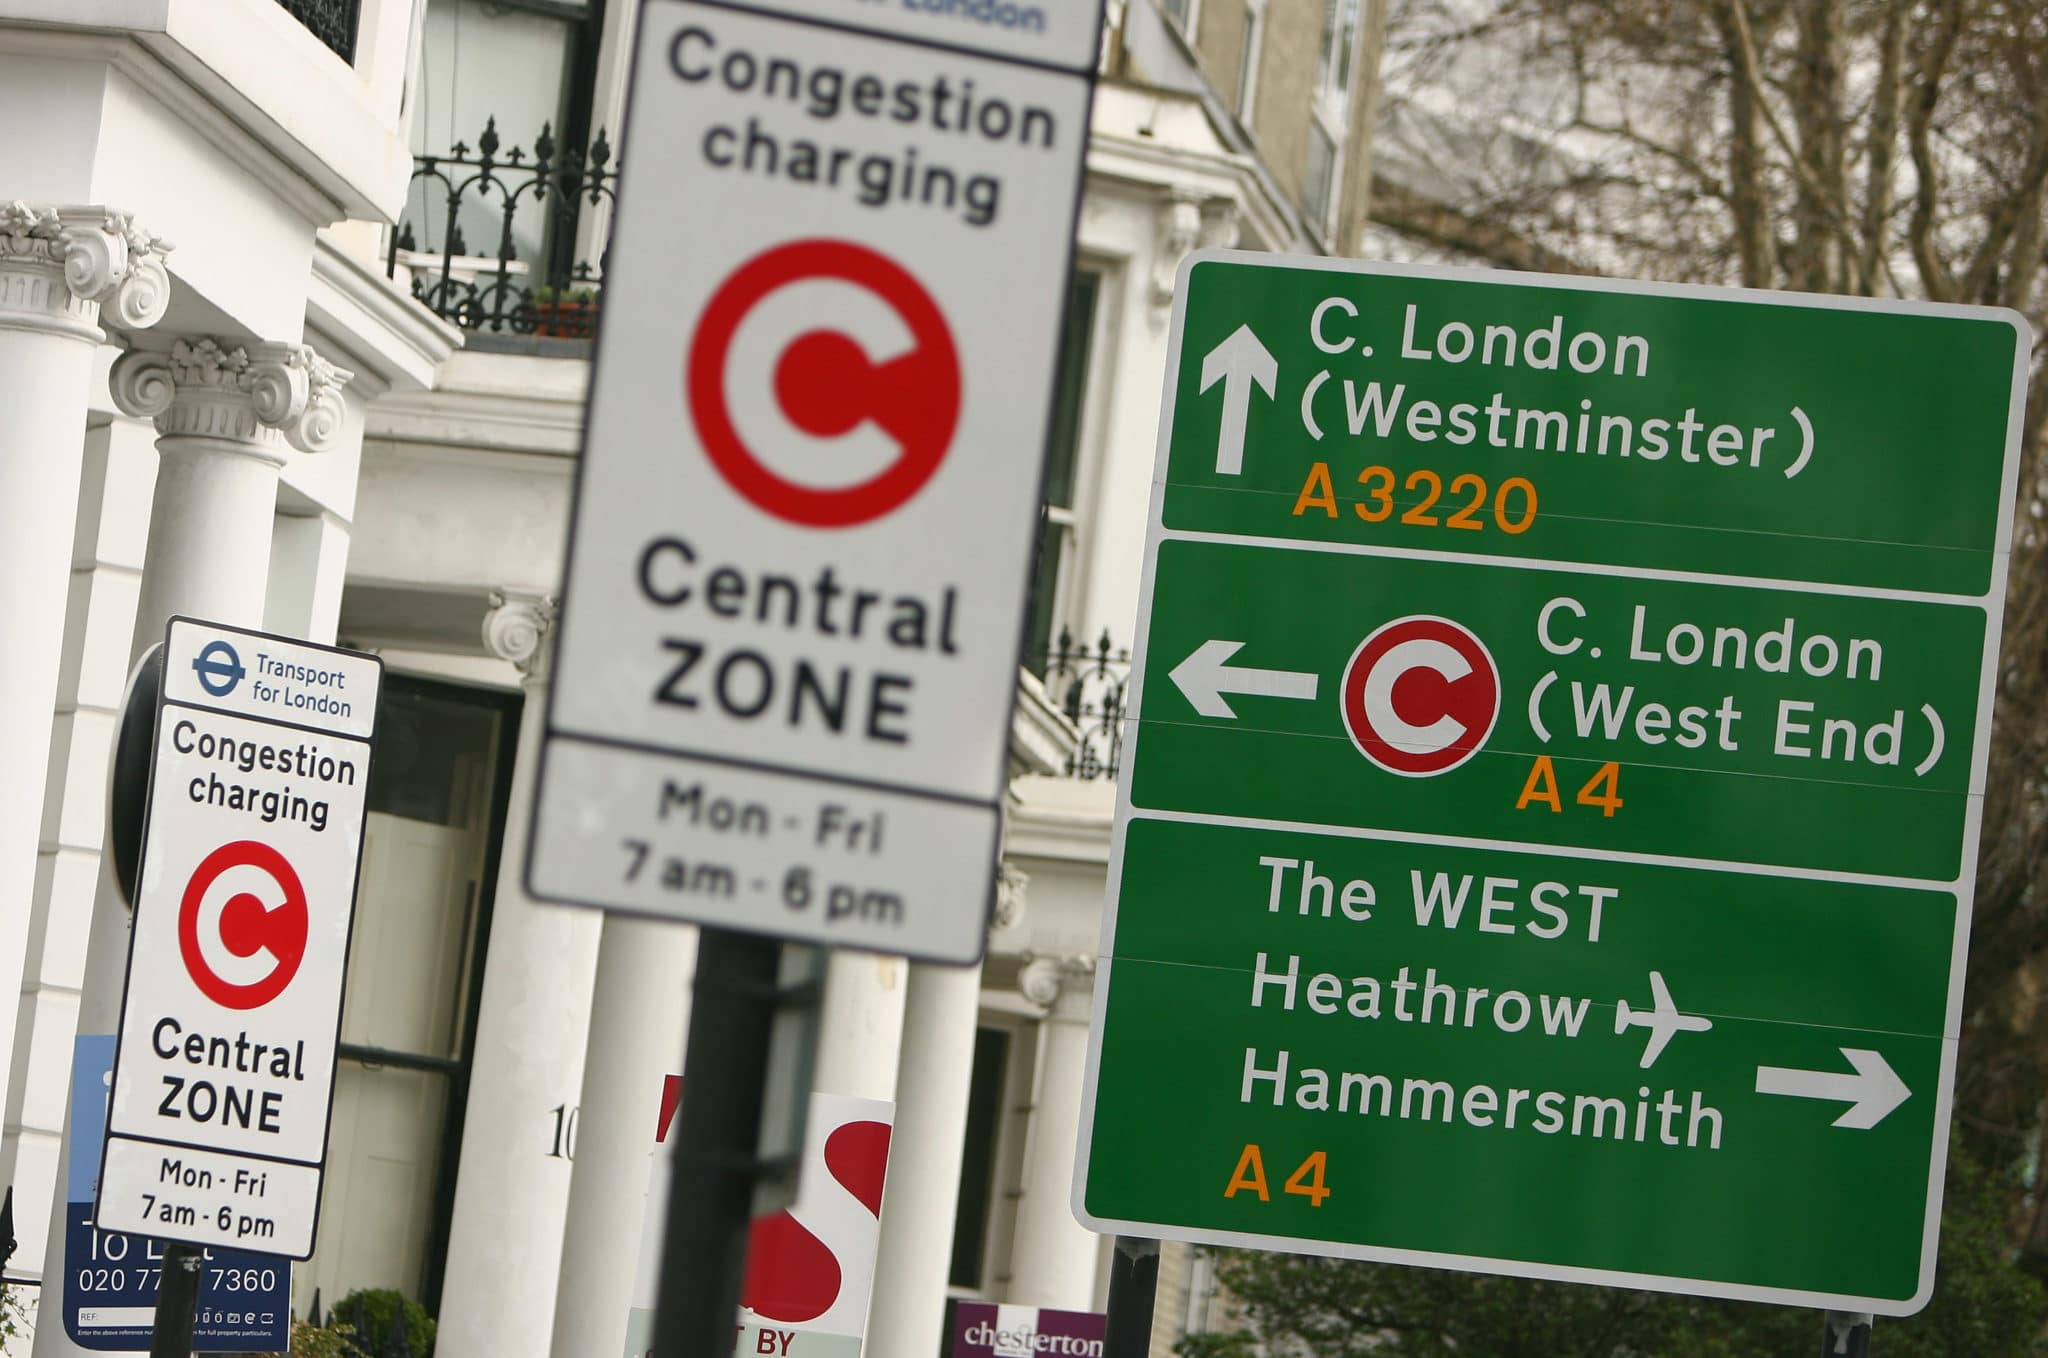 Congestion charge in Londra